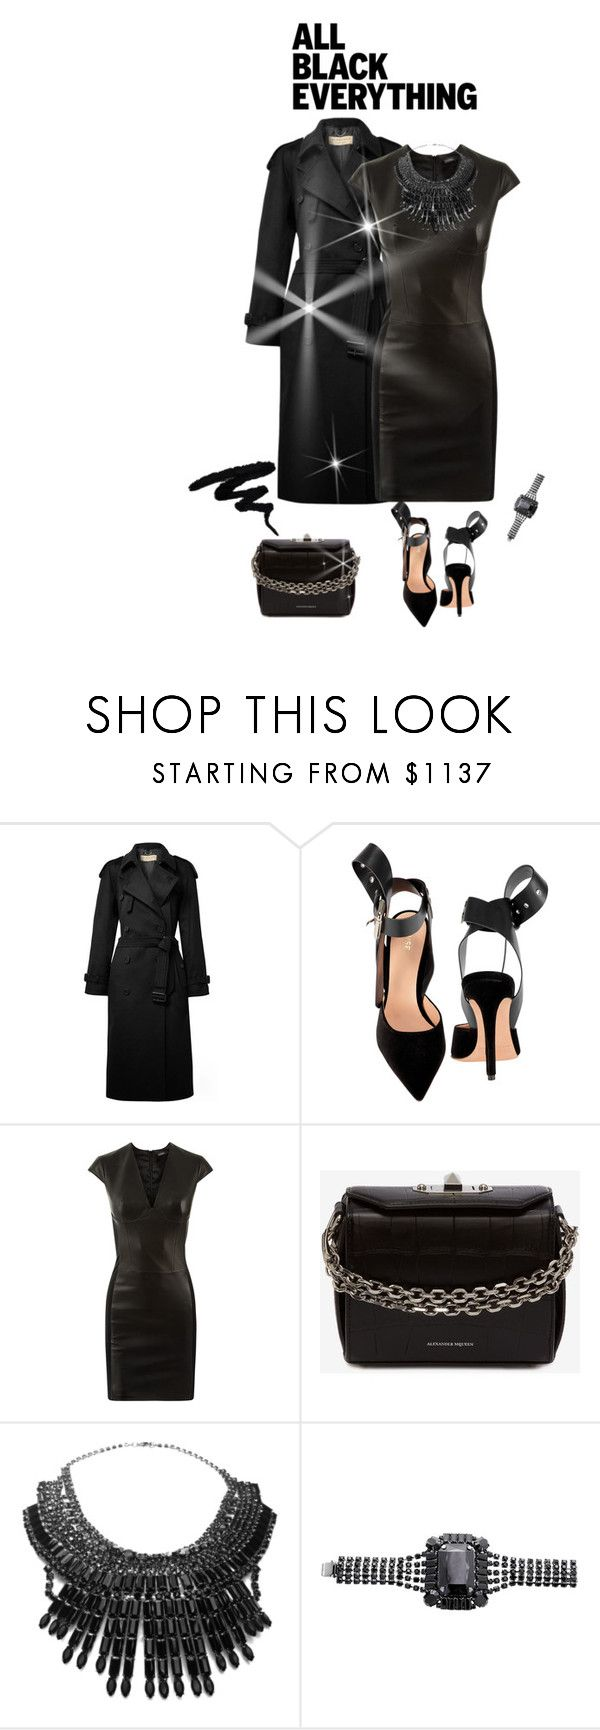 """outfit 7296"" by natalyag ❤ liked on Polyvore featuring Burberry, Intermix, La Perla, Alexander McQueen, Tom Binns and allblackoutfit"